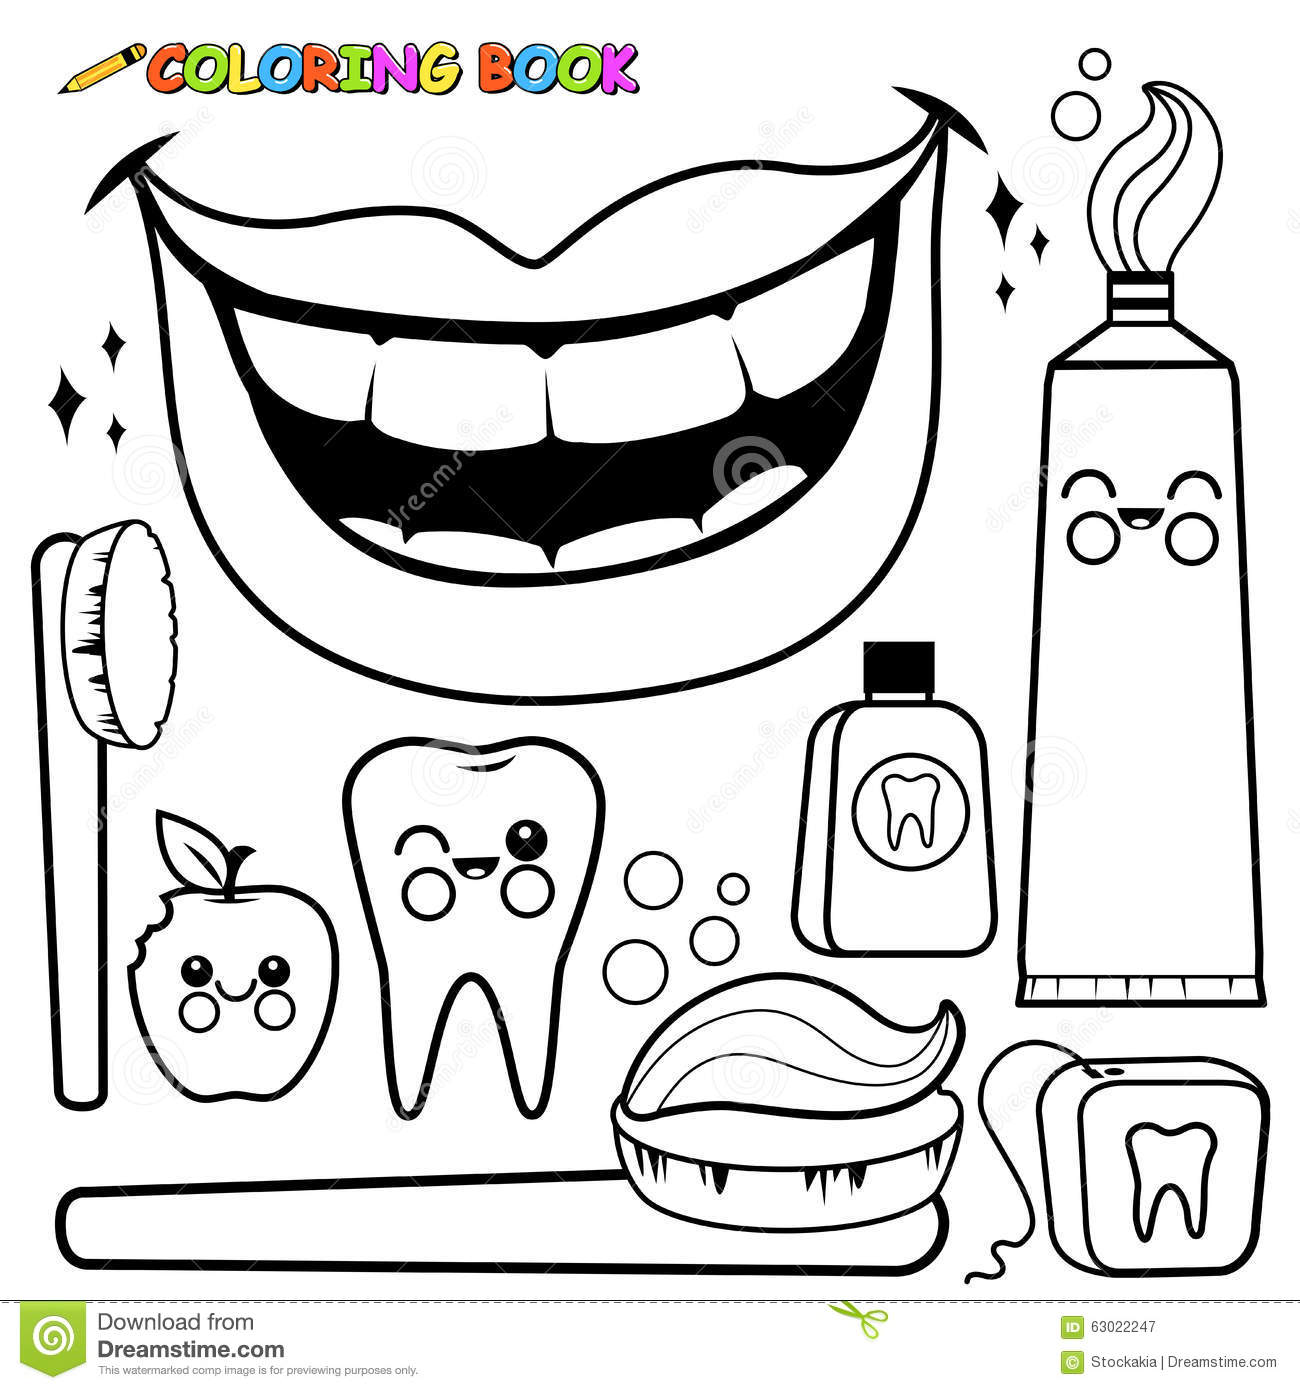 Coloring Page Dental Hygiene Vector Set Black White Outline Objects Toothbrush Toothpaste Floss Mouth Wash Tooth Bitten on Personal Hygiene Coloring Pages